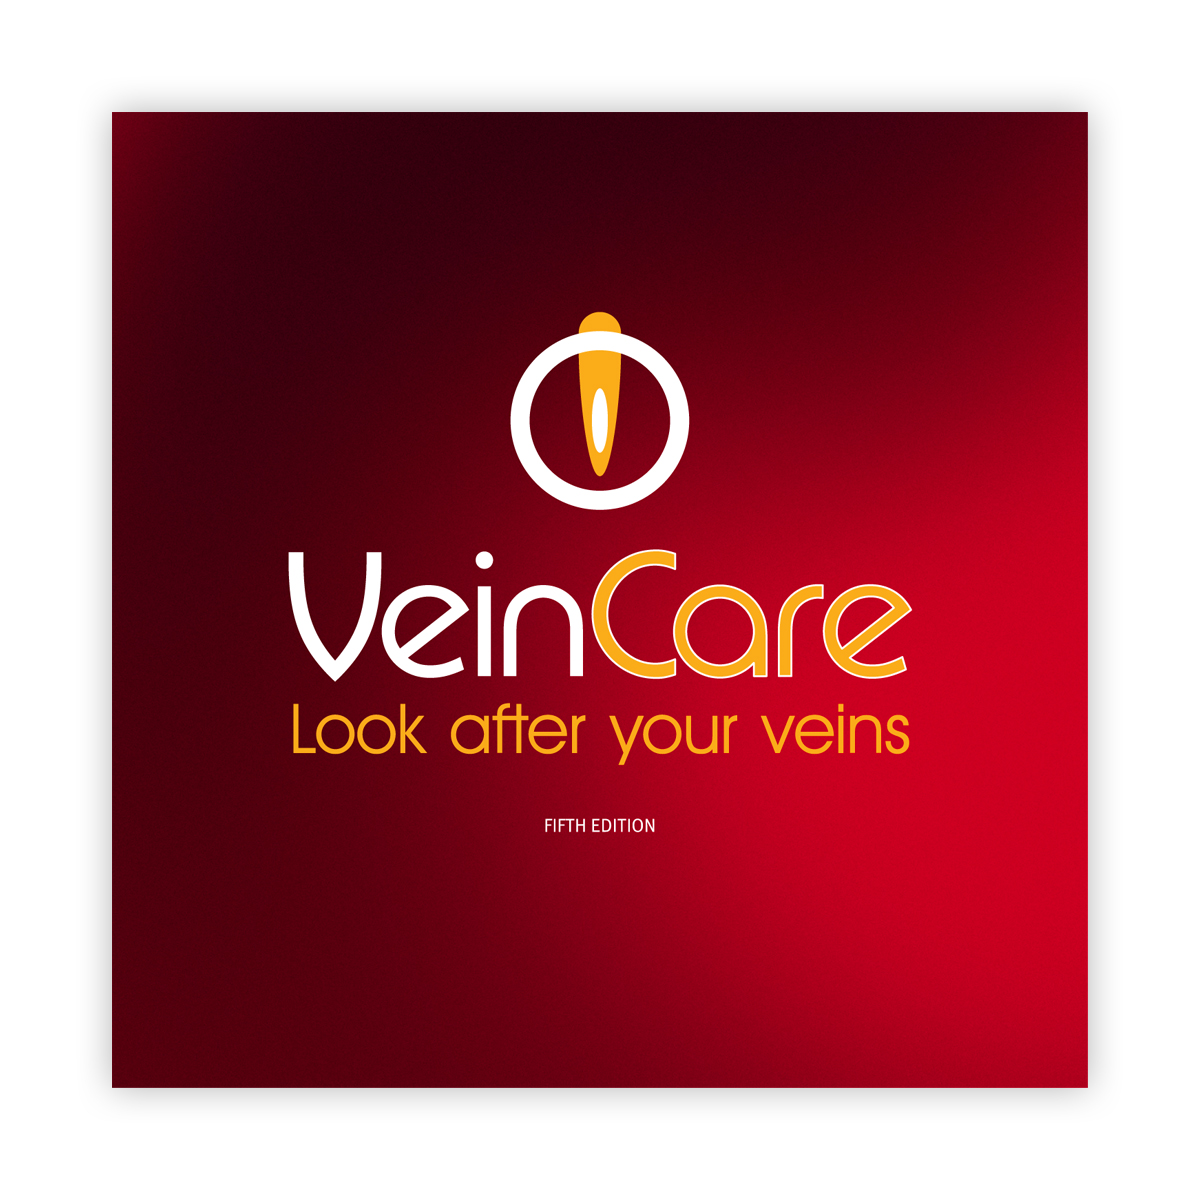 Veincare booklet